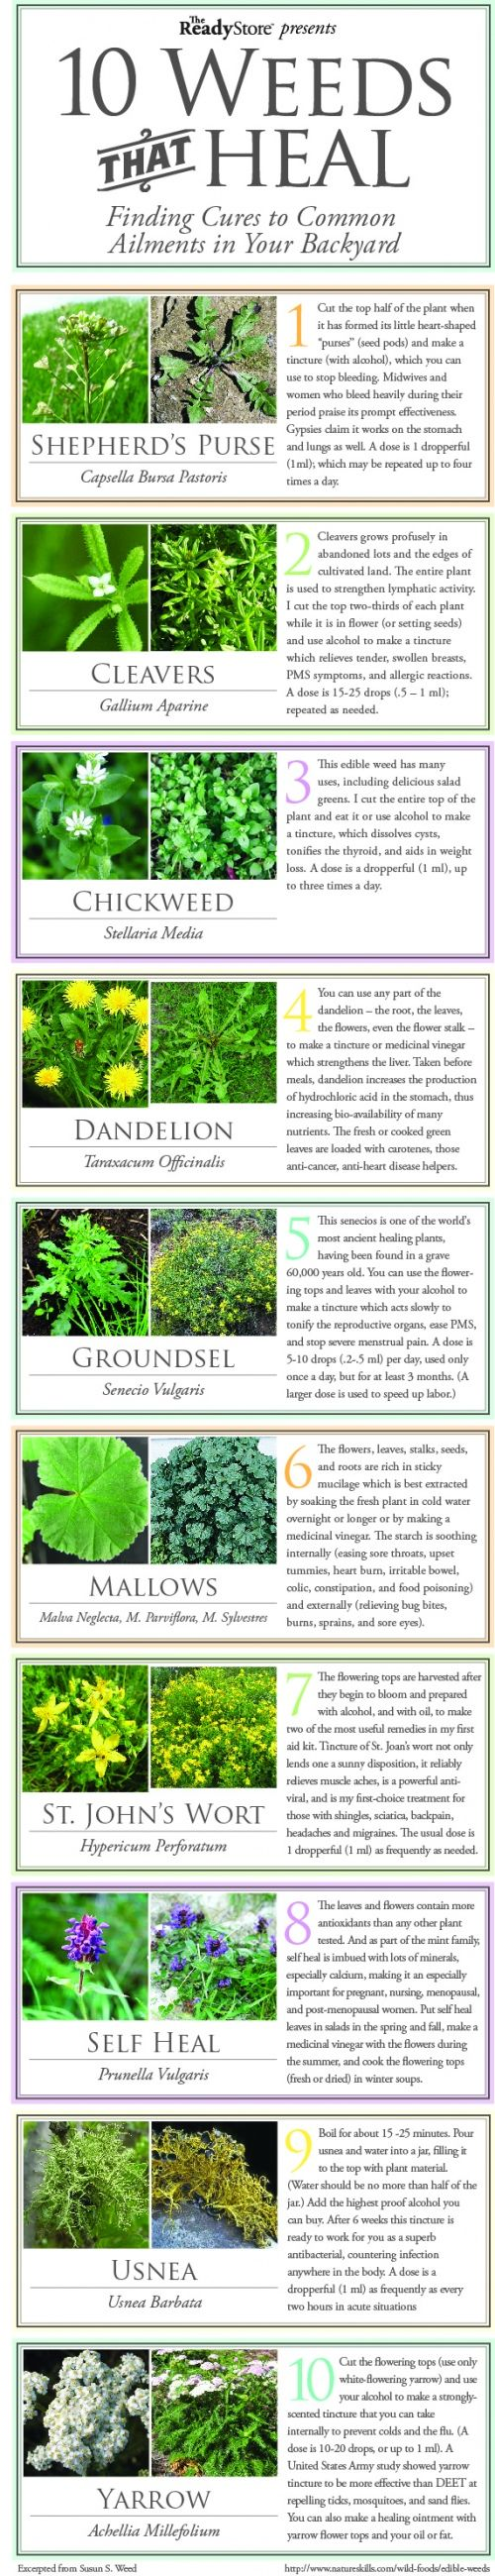 as a reminder> 10 common weeds that can heal you